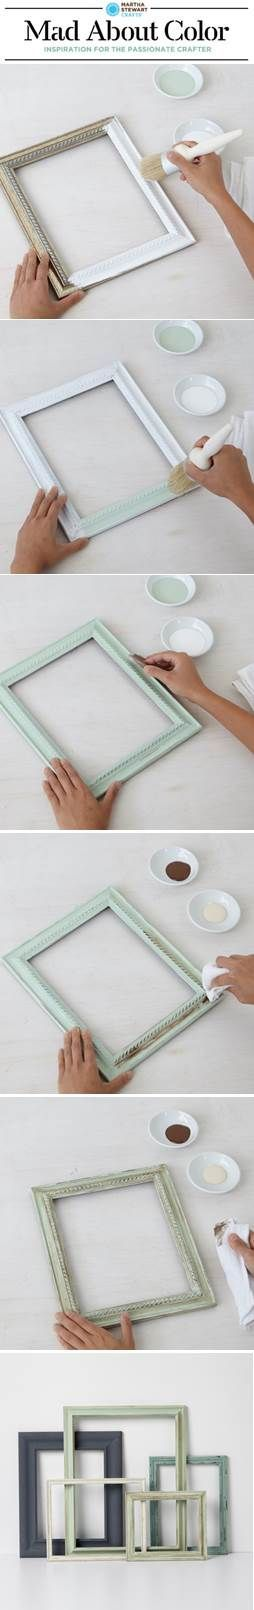 Make beautiful frames with Vintage Decor Paint and Wax from #marthastewartcrafts